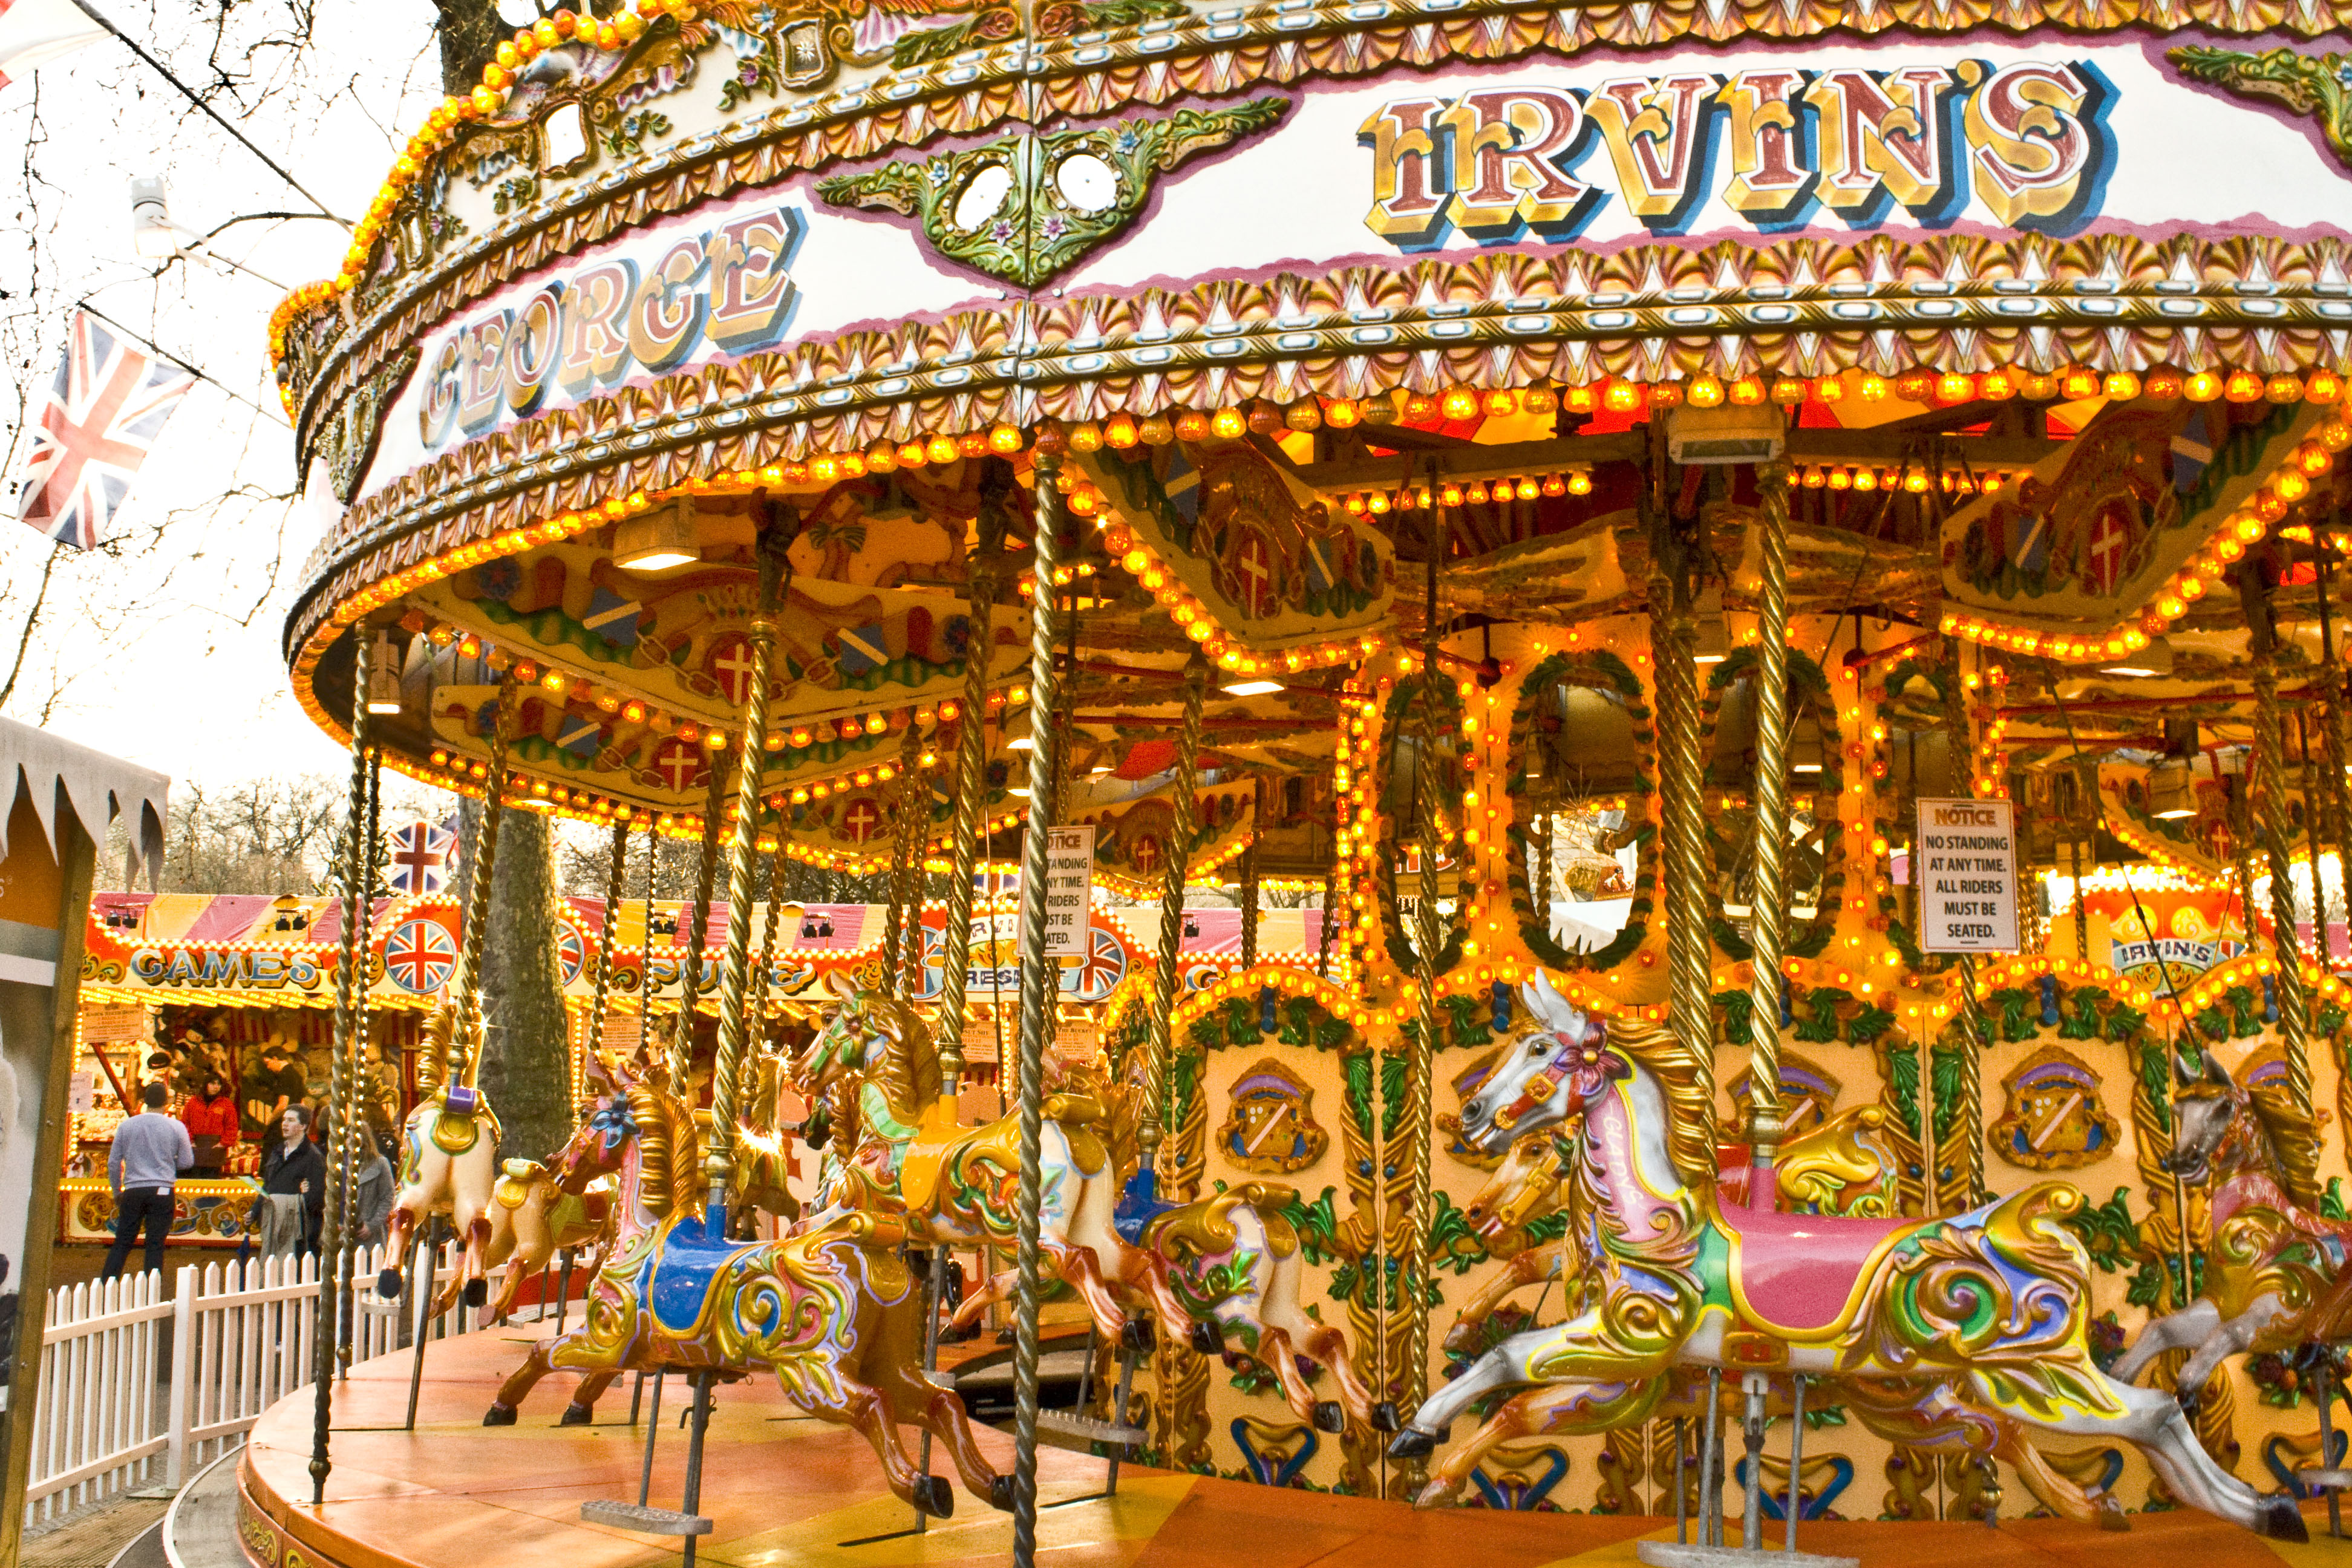 Carousel Wallpapers High Quality | Download Free